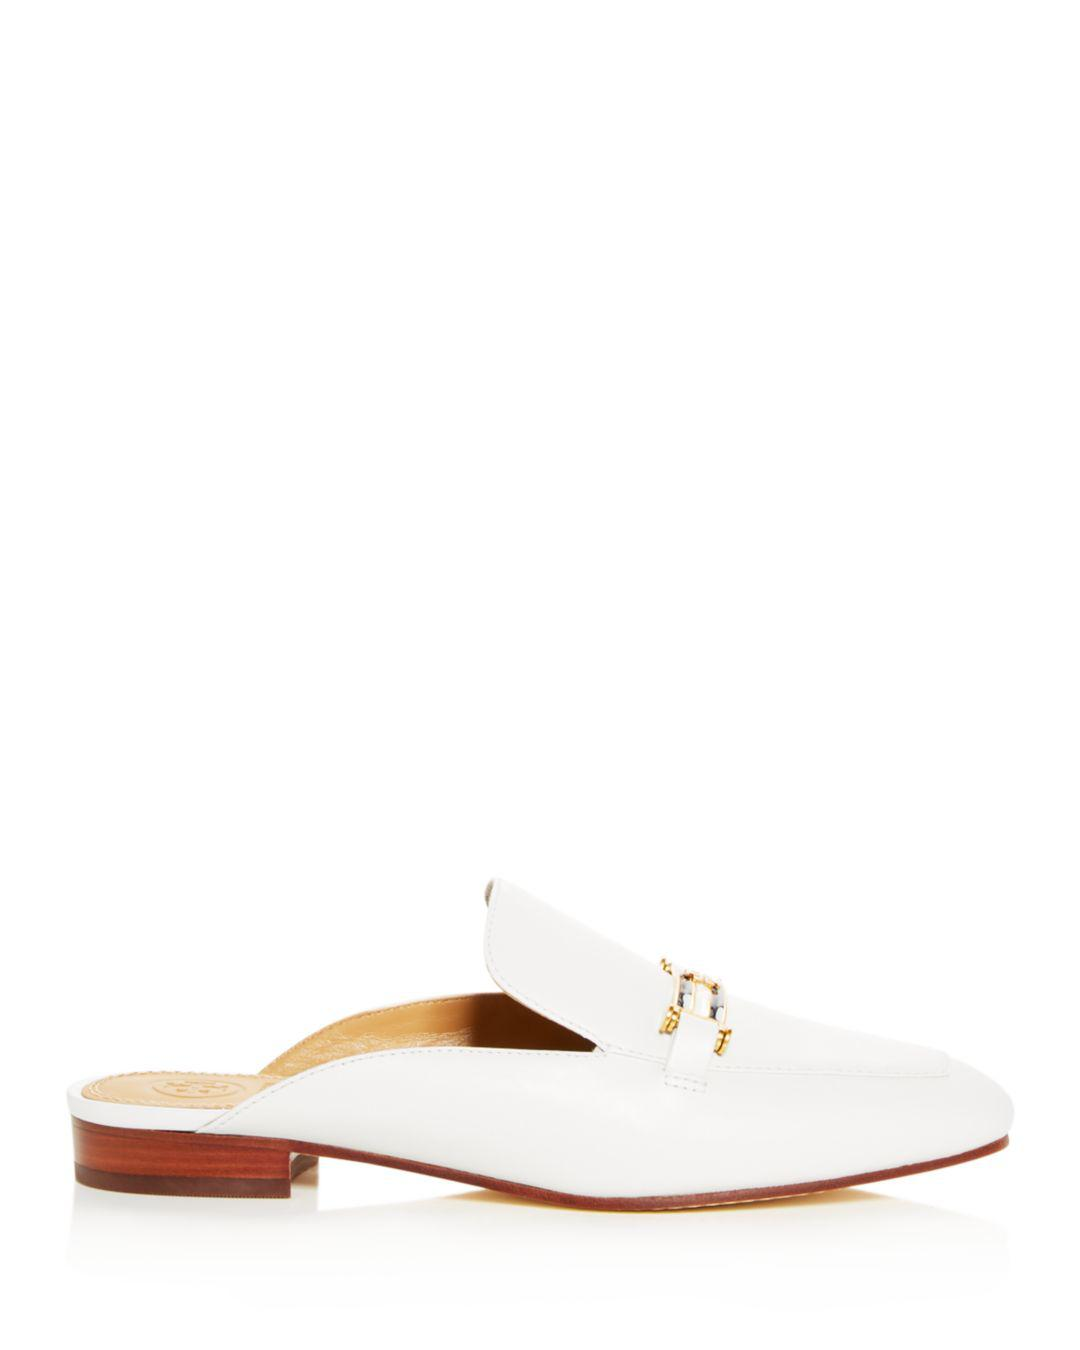 4ce4c2798a3 Lyst - Tory Burch Women s Amelia Leather Apron Toe Loafer Mules